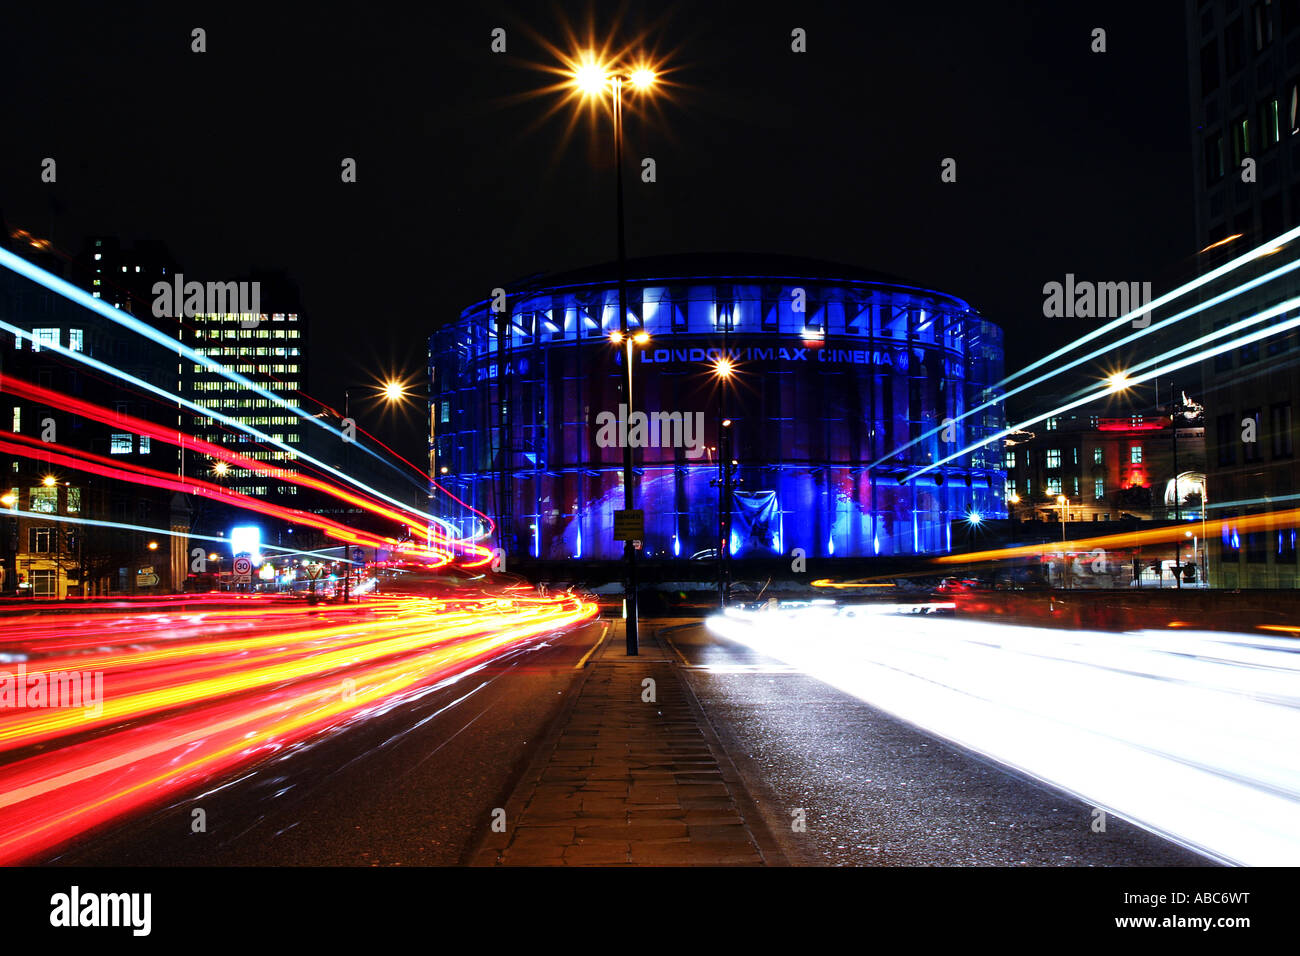 The BFI Imax cinema in London has the largest cinema screen in the UK. Films are shown in 2D and 3D. - Stock Image